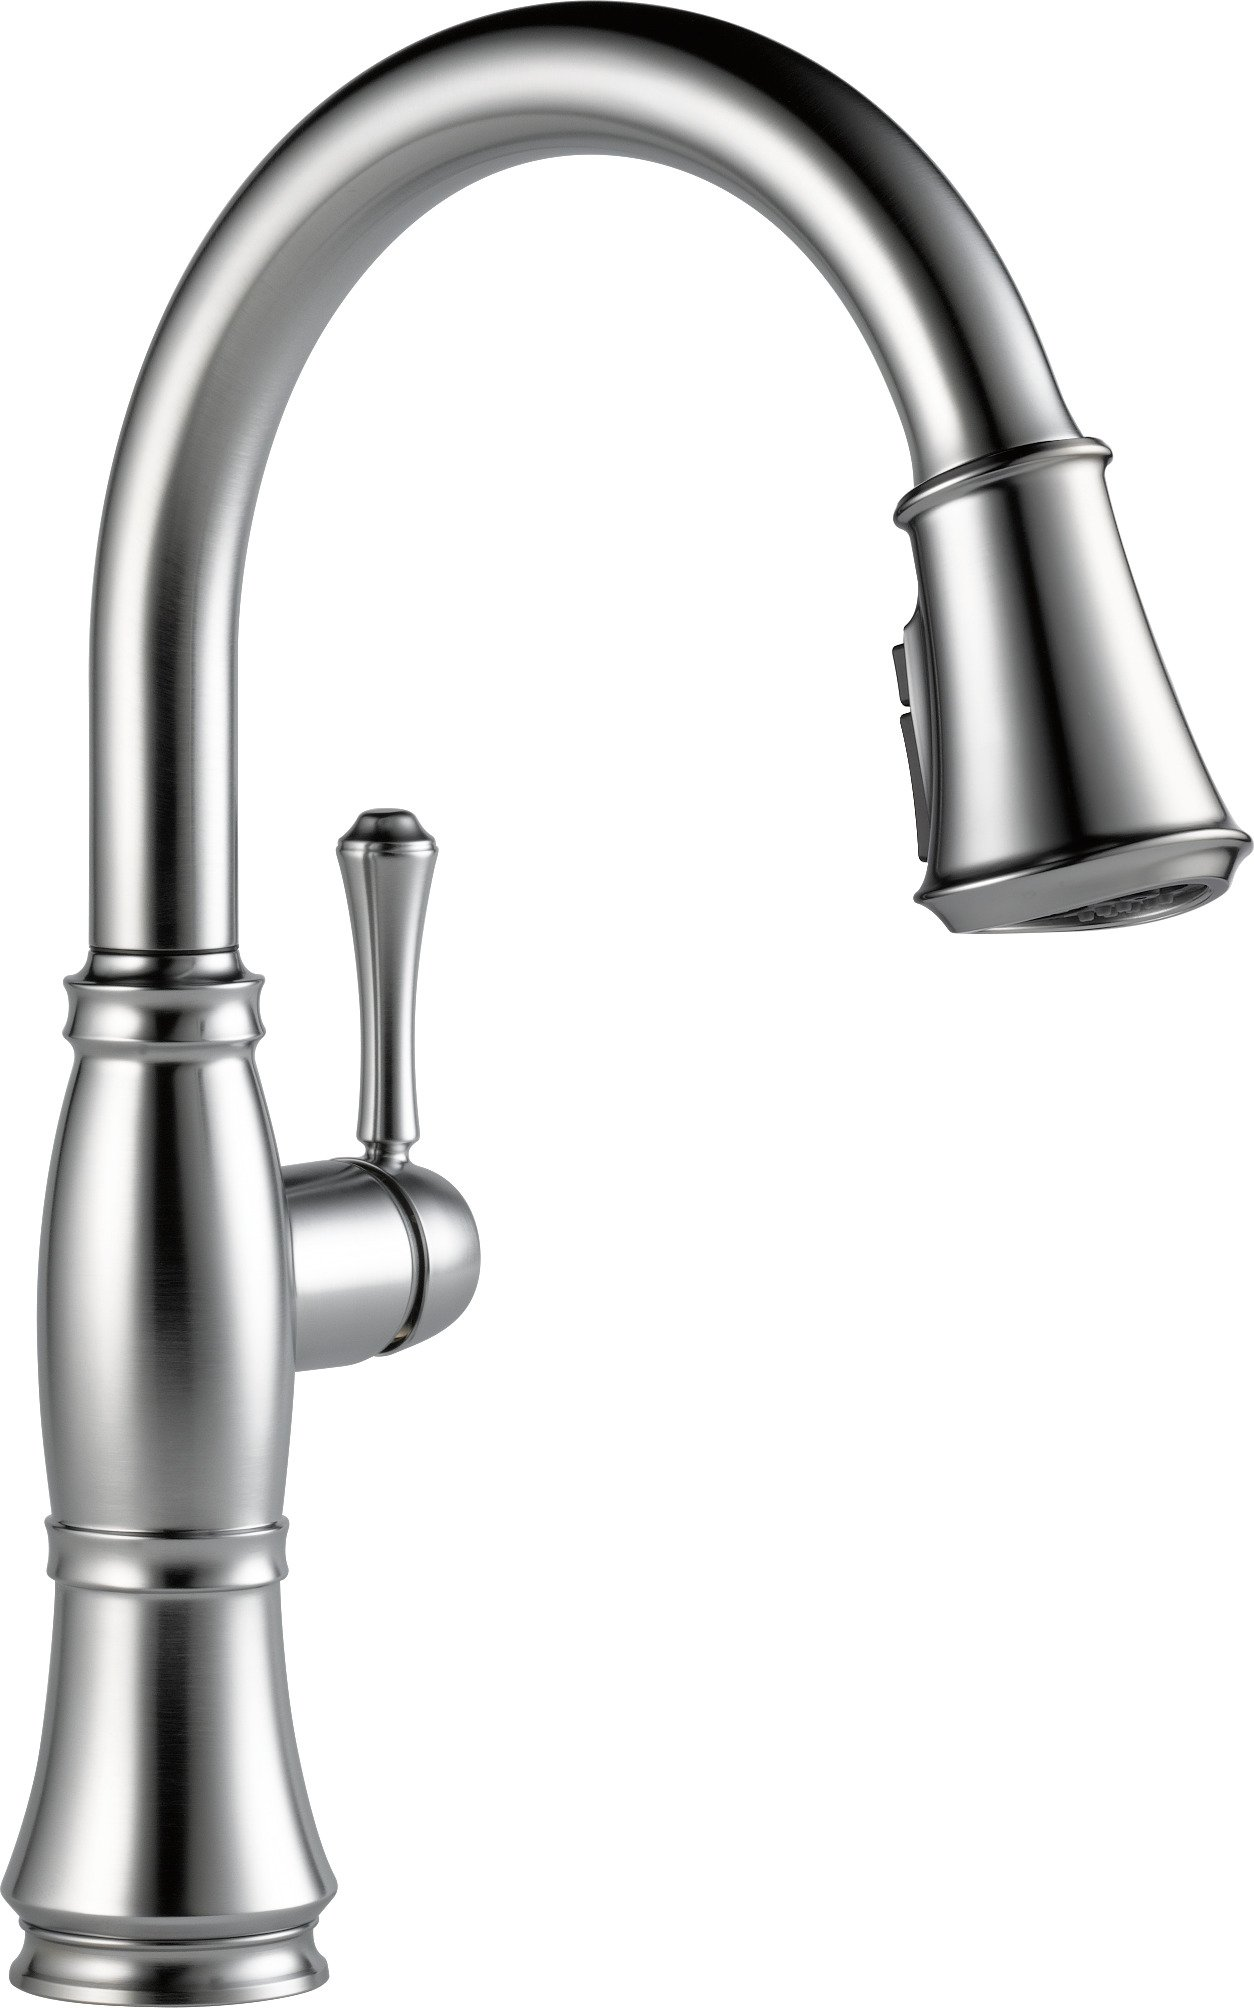 Delta Faucet 9197-AR-DST Cassidy, Single Handle Pull-Down Kitchen Faucet with Magnetic Docking, Arctic Stainless